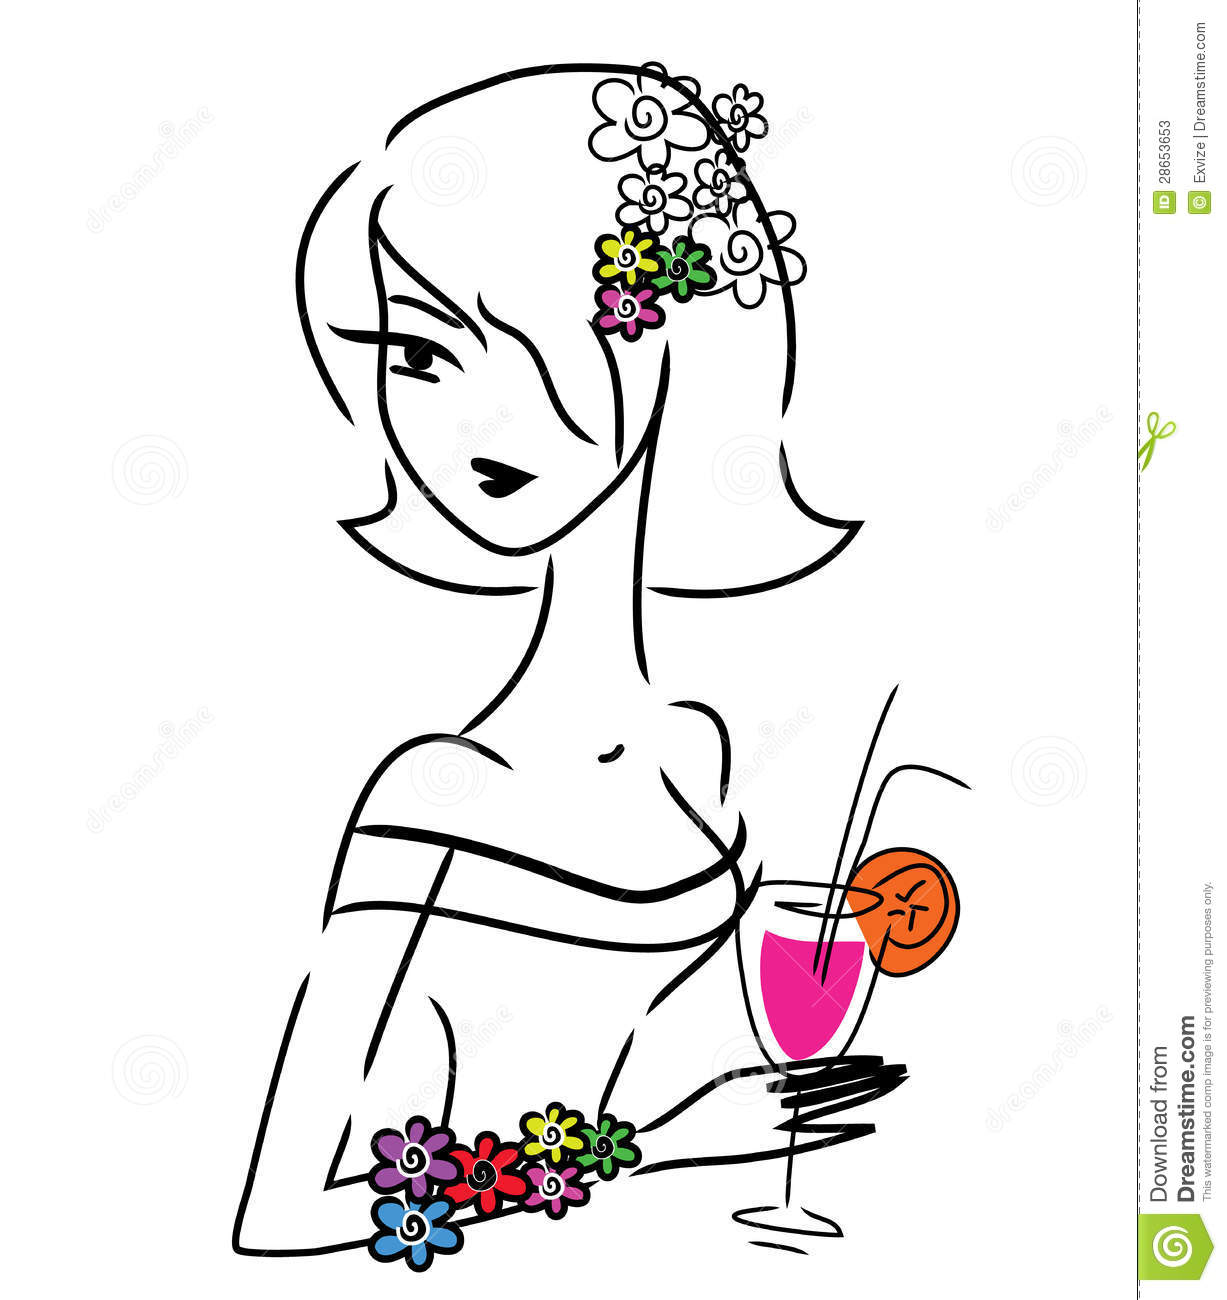 100961 Cricket Player Vector further Border Control likewise Wall Sticker Sunflower Style 1530 besides Stock Photos Cute Doodle Girl Drink Image28653653 in addition Louisxv1. on pink drawing